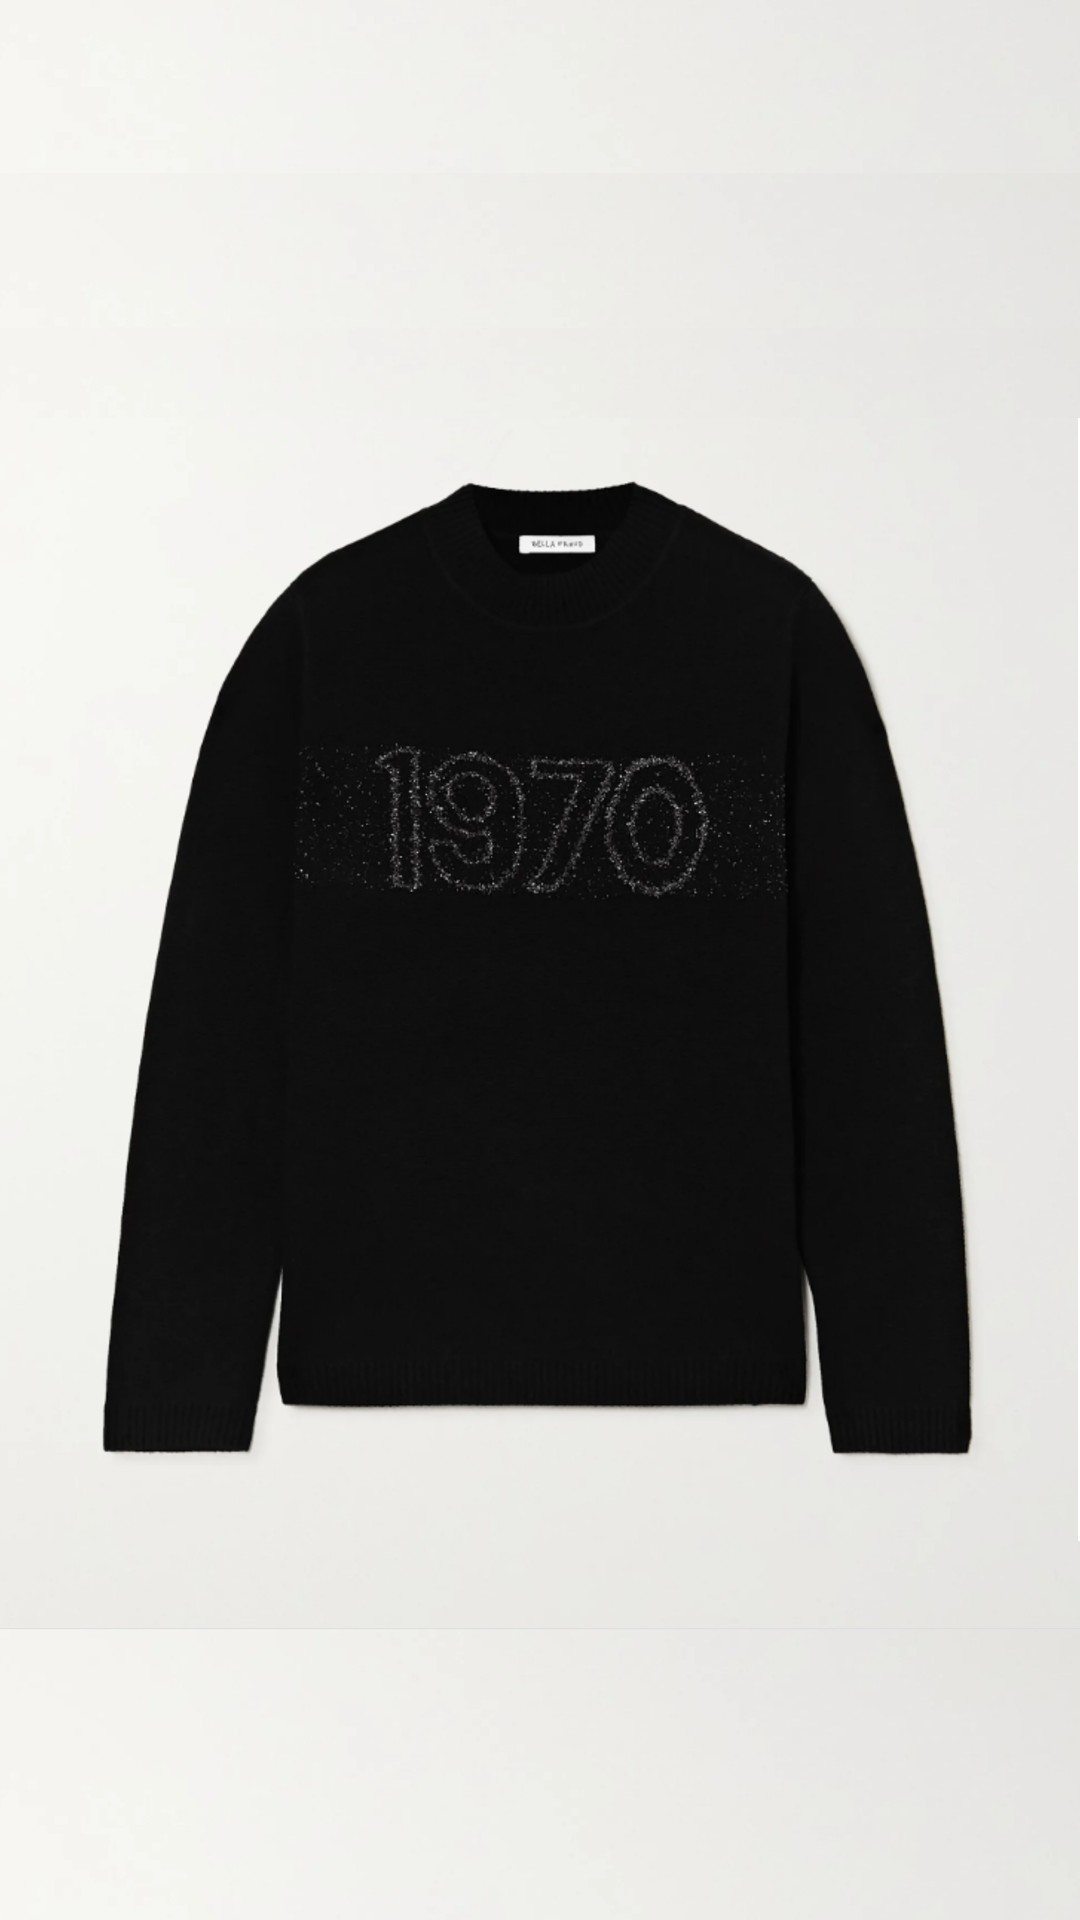 Bella Freud 1970 intarsia wool-blend sweater